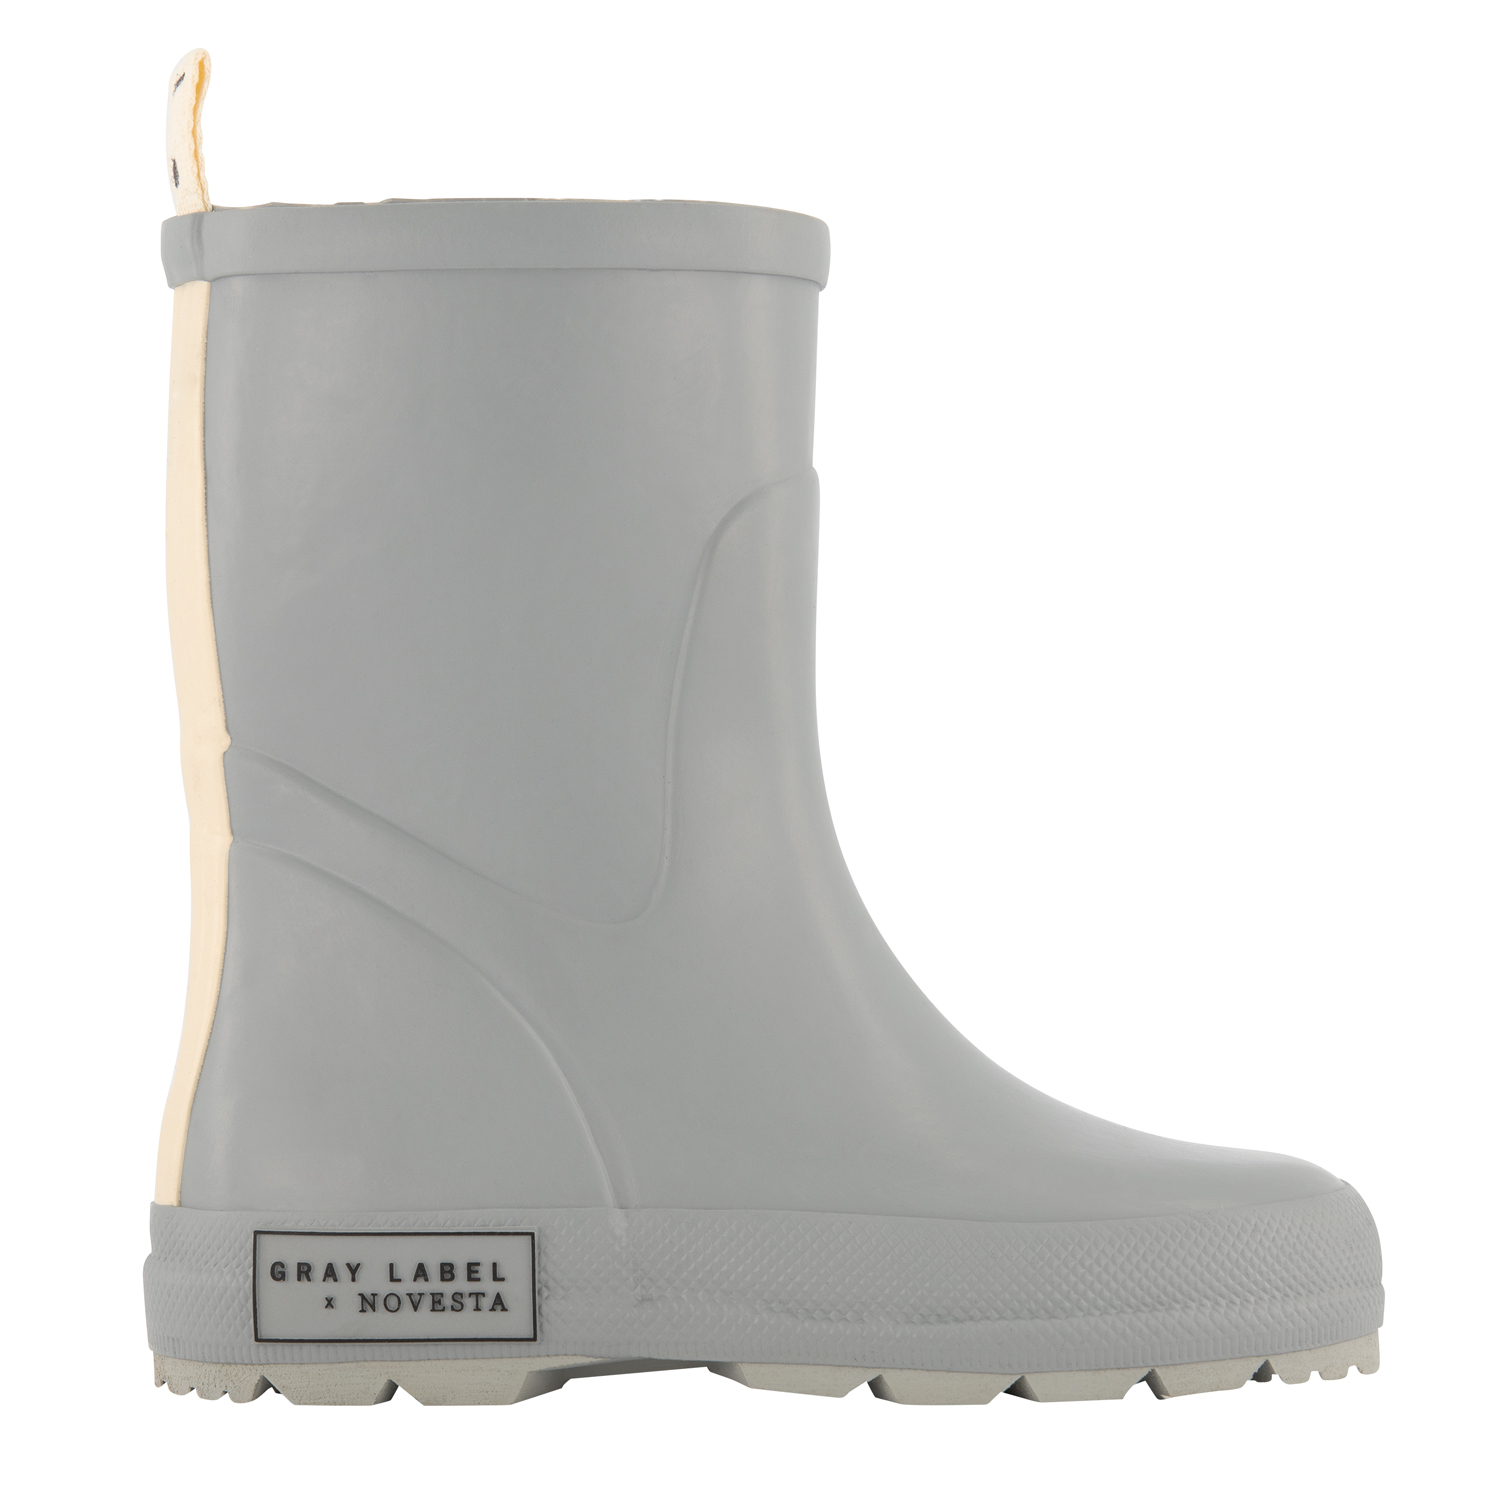 gray label x novesta rain boots grey